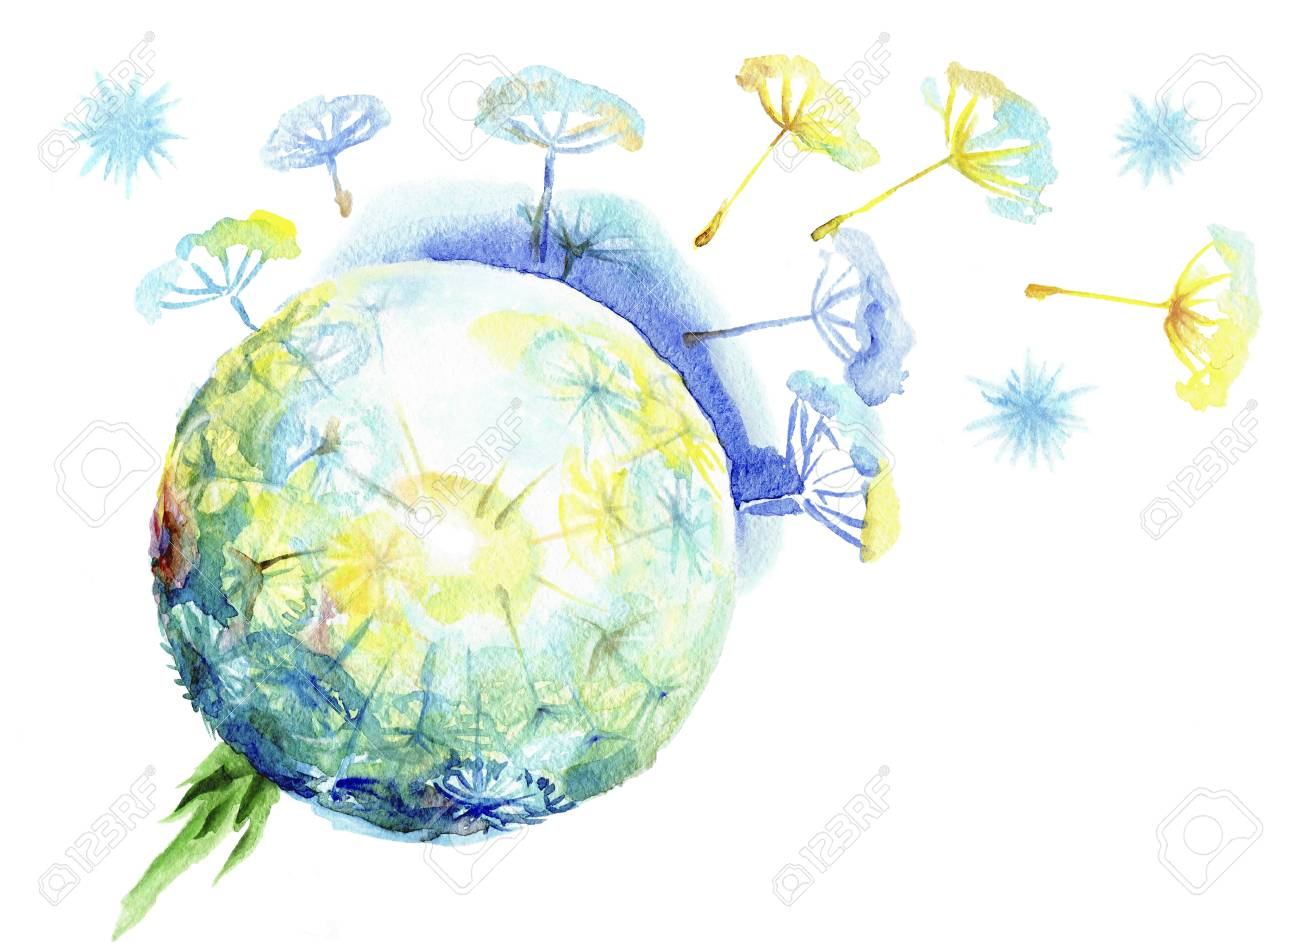 Fluffy dandelion dispersing seeds.Watercolor sphere of a dandelion on a white background - 68799443